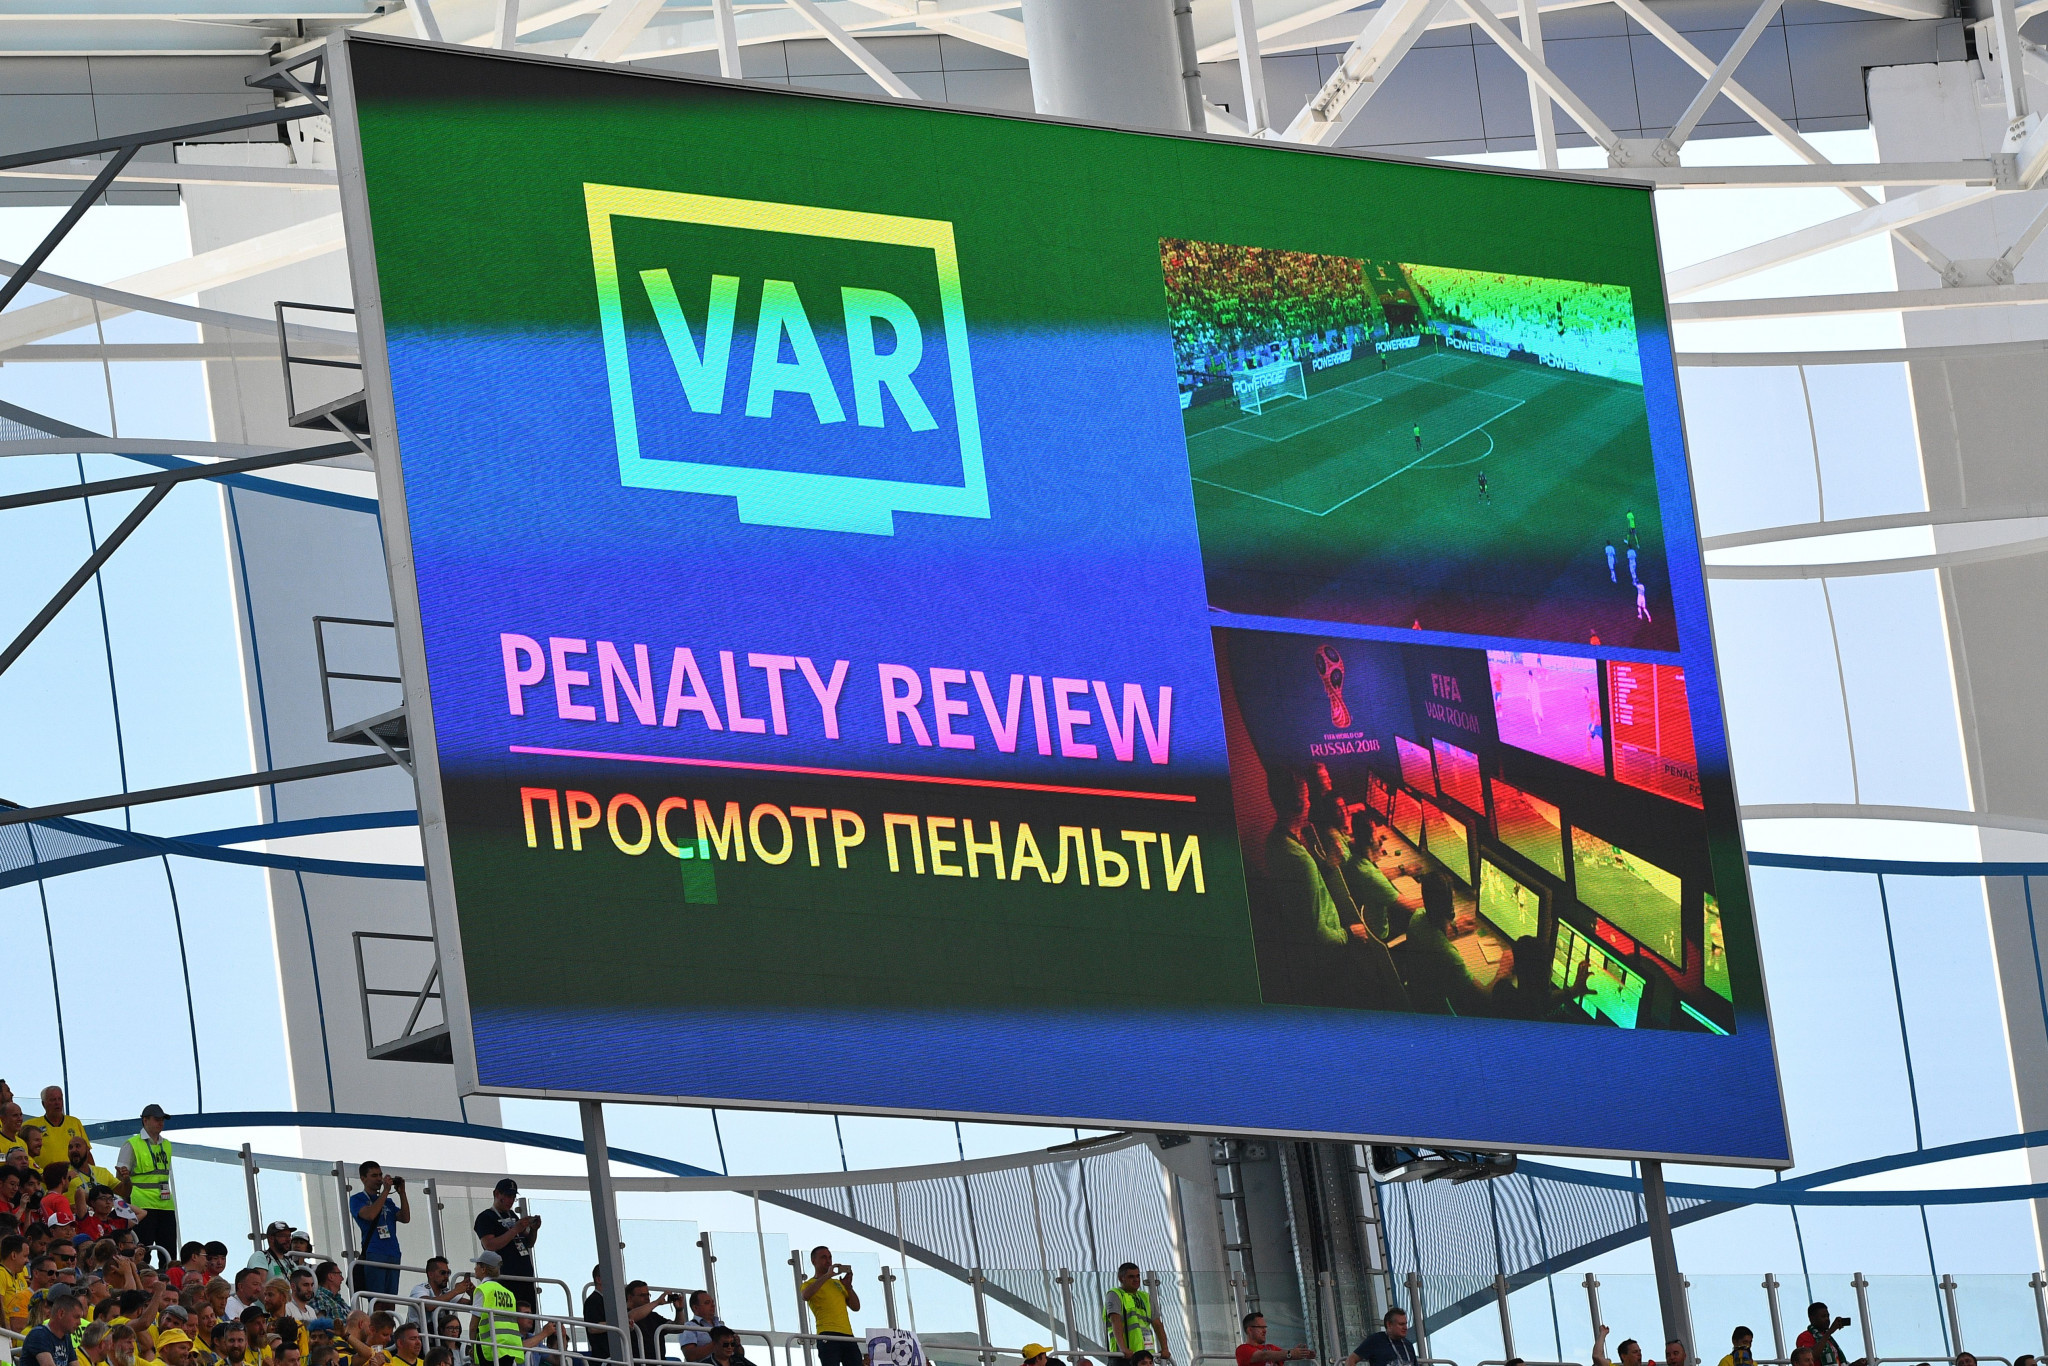 VAR technology was used once again to determine the Sweden penalty ©Getty Images